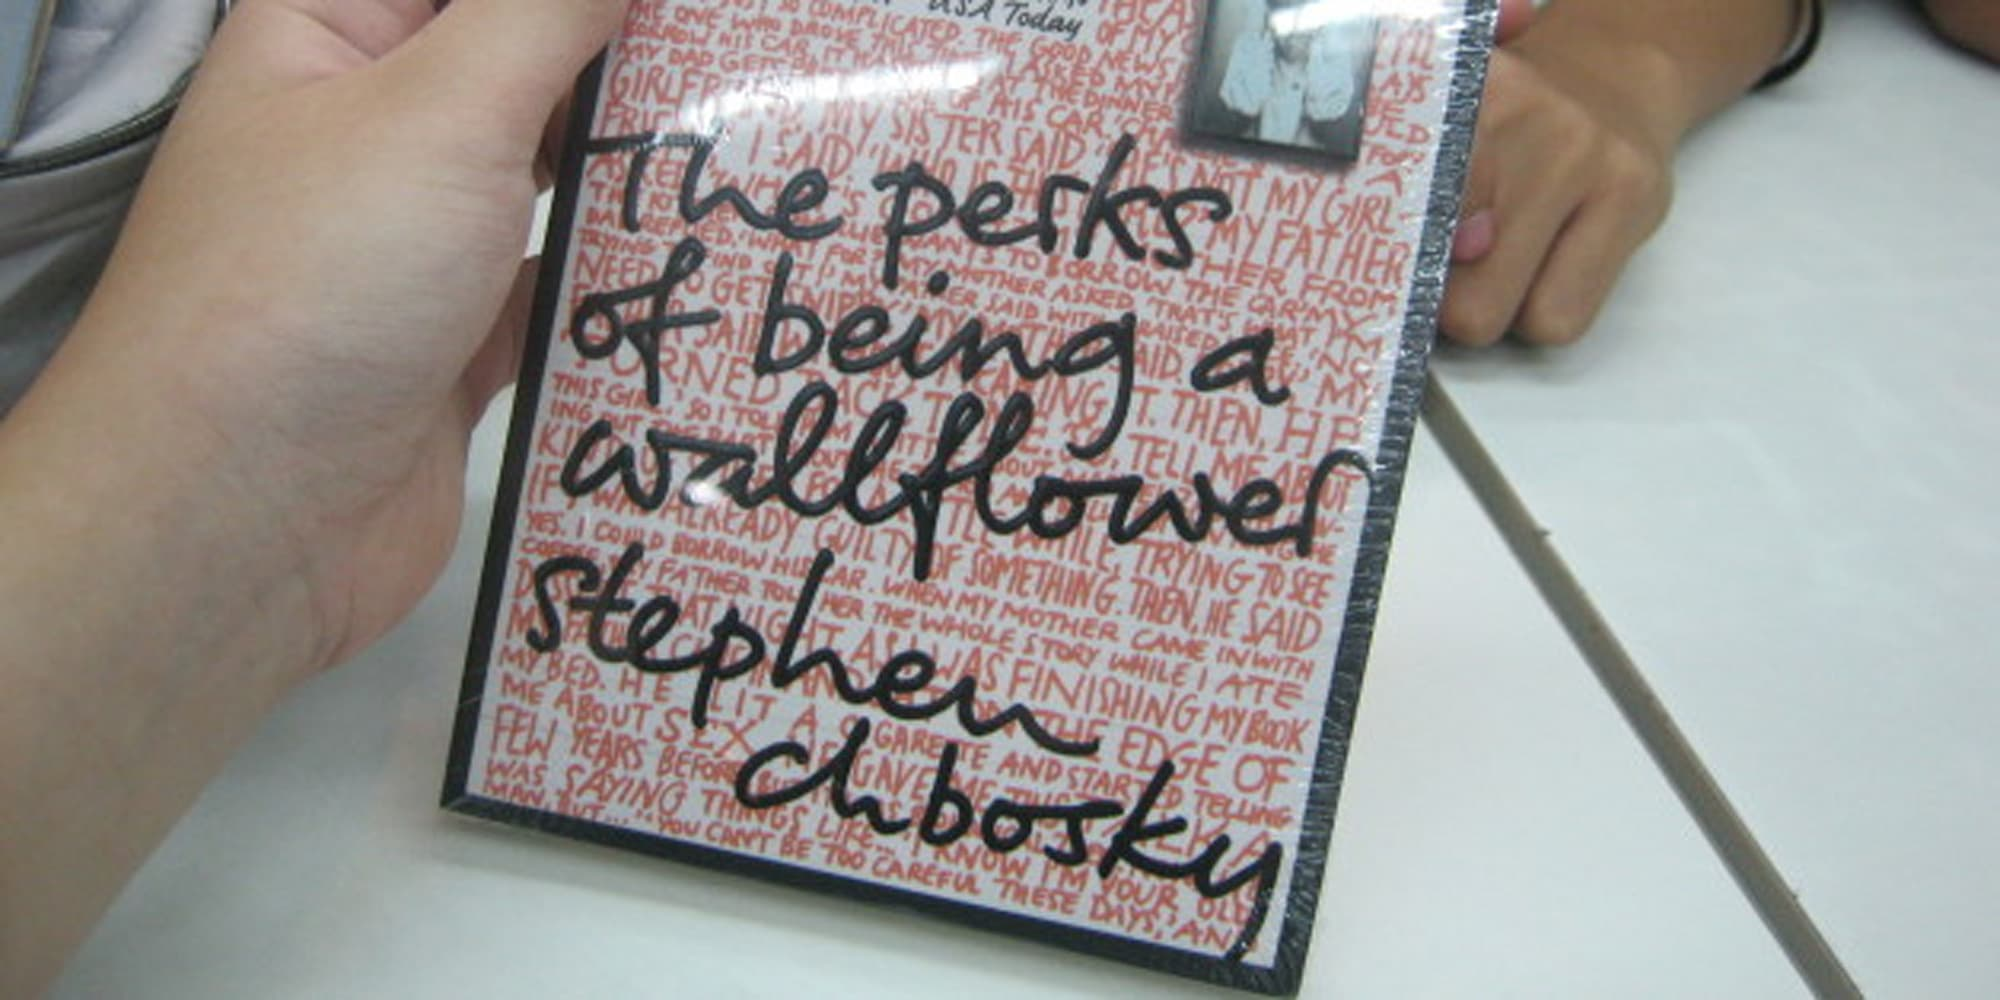 the perks of being a wallflower essay the perks of being a wallflower by ashlynn hawes on prezi nvrdns com the perks of